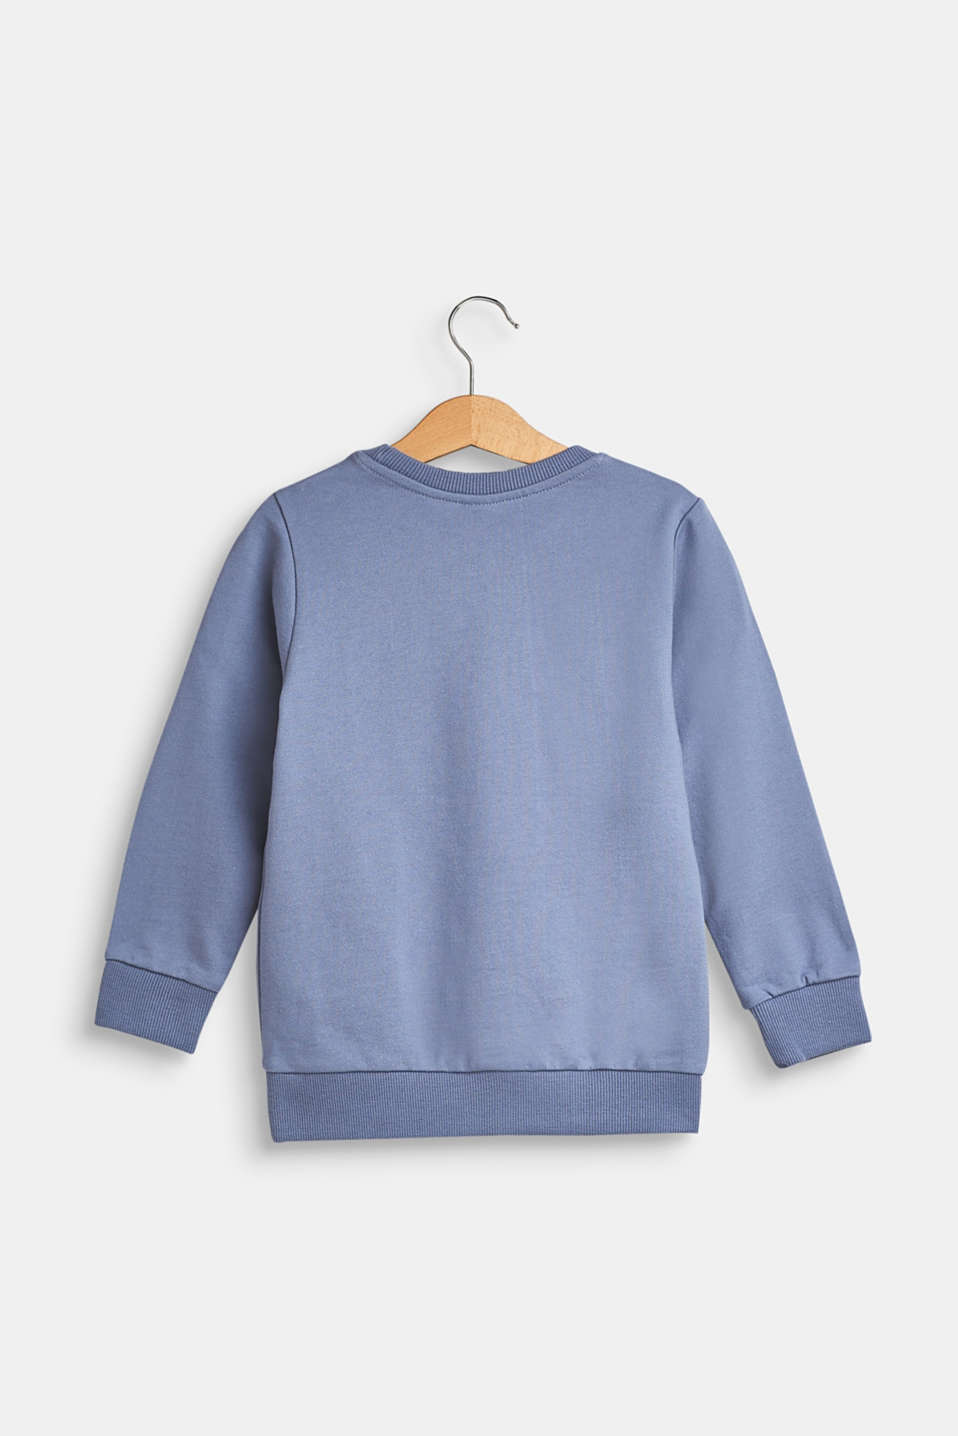 Sweatshirt with statement print, 100% cotton, GREY BLUE, detail image number 1